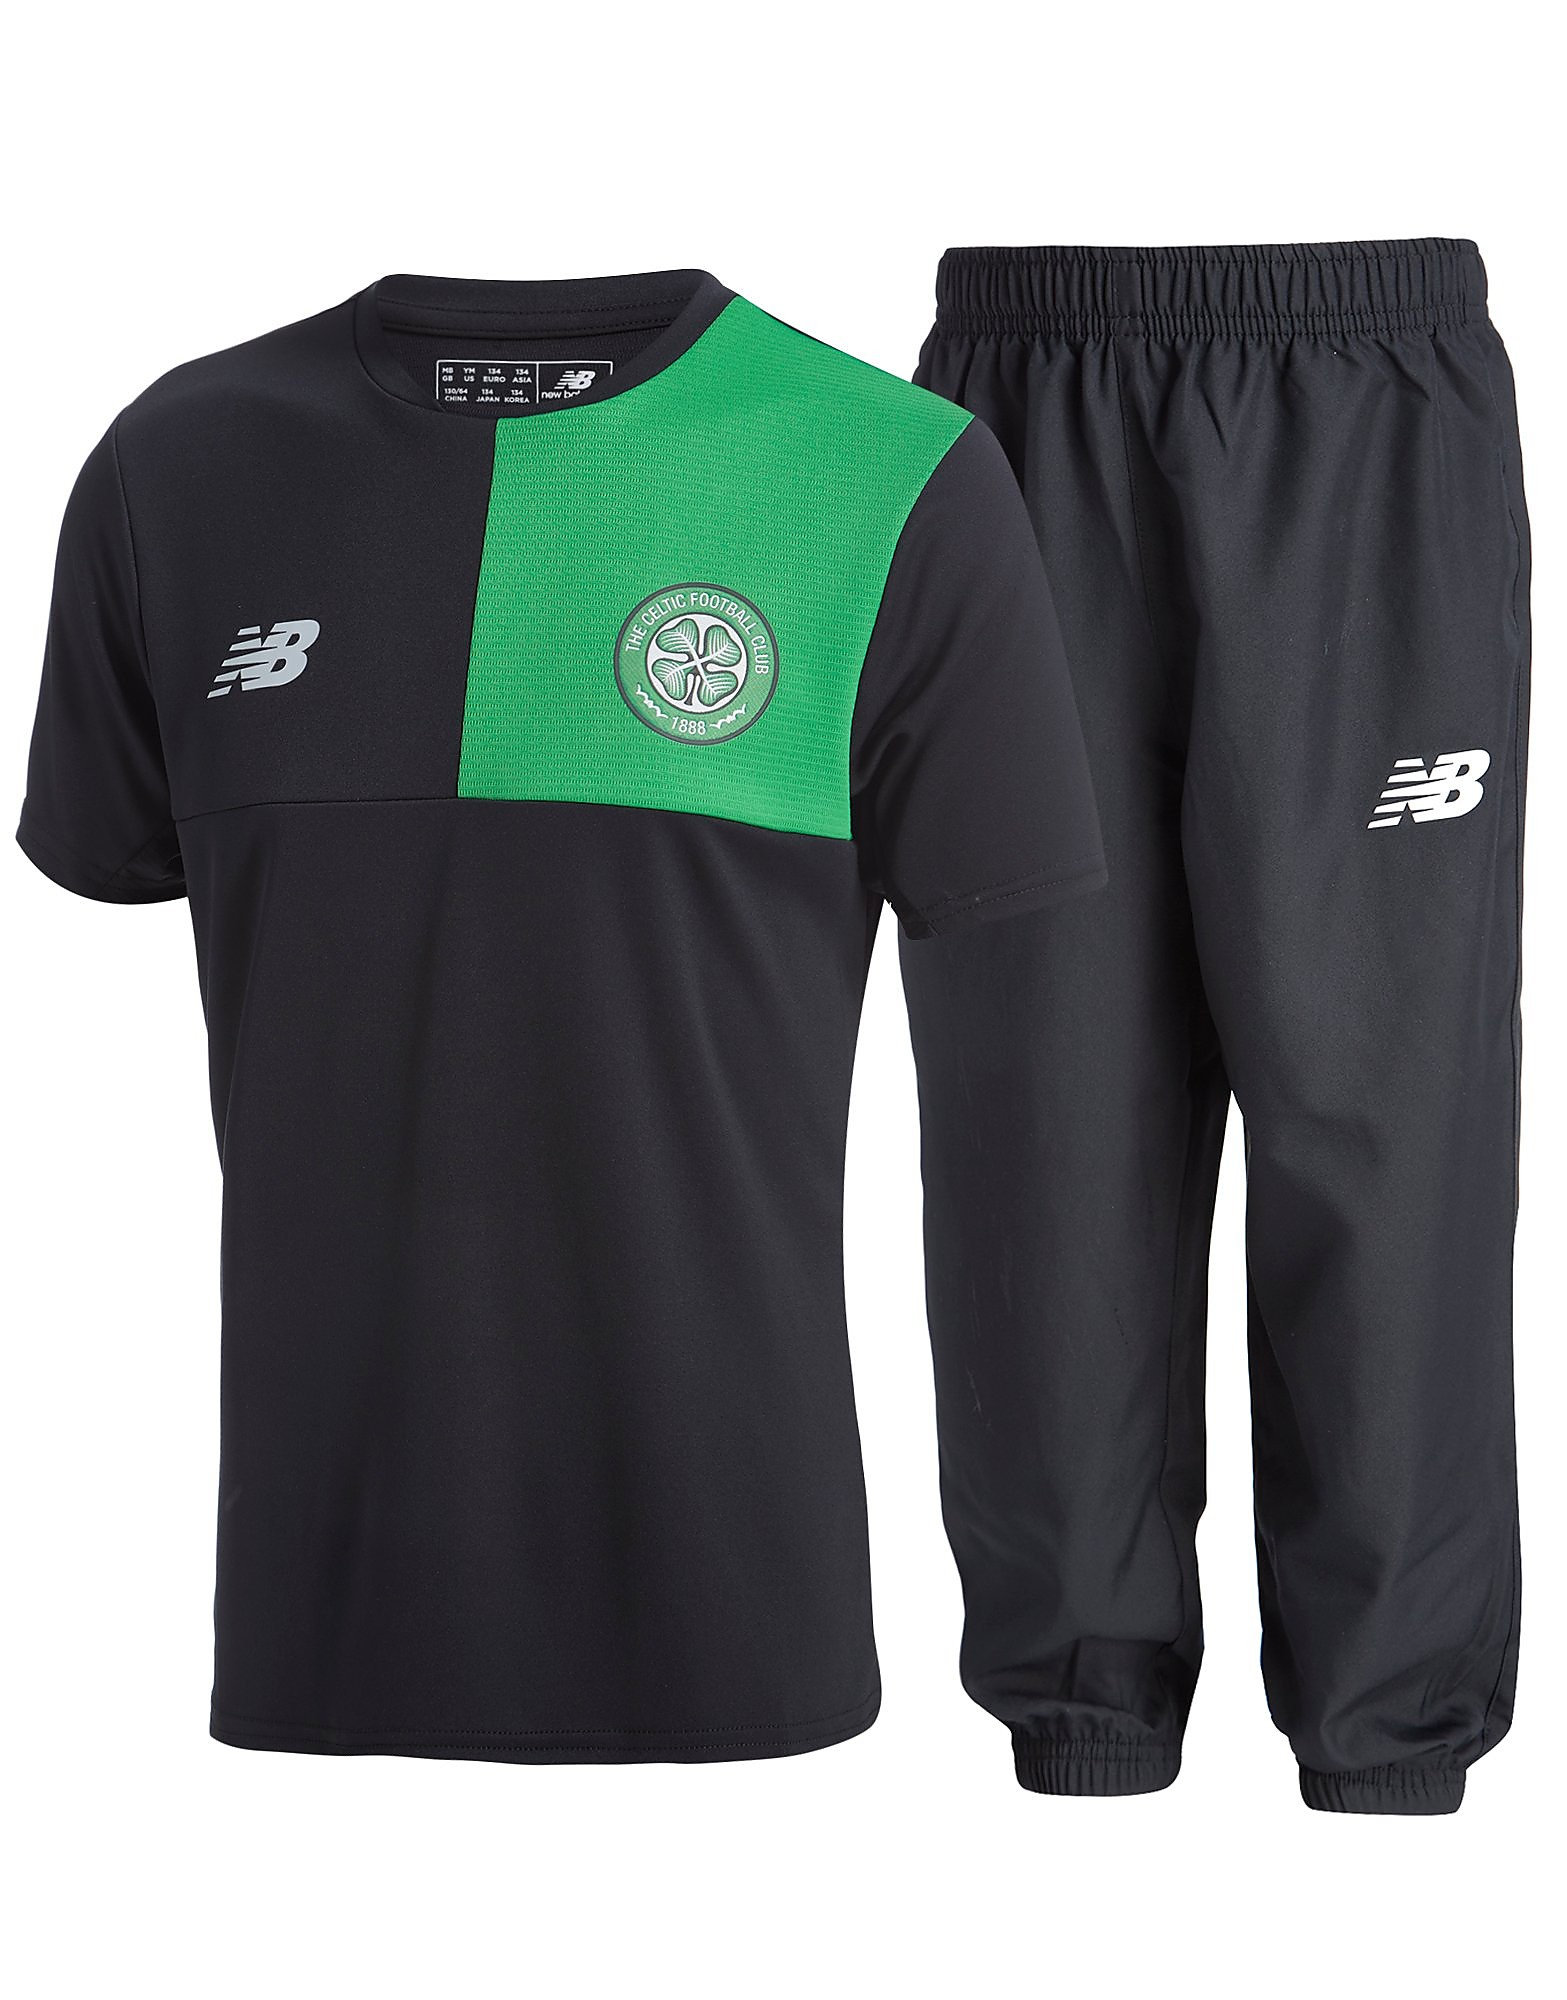 New Balance Celtic FC 2016/17 Presentation Suit Infant